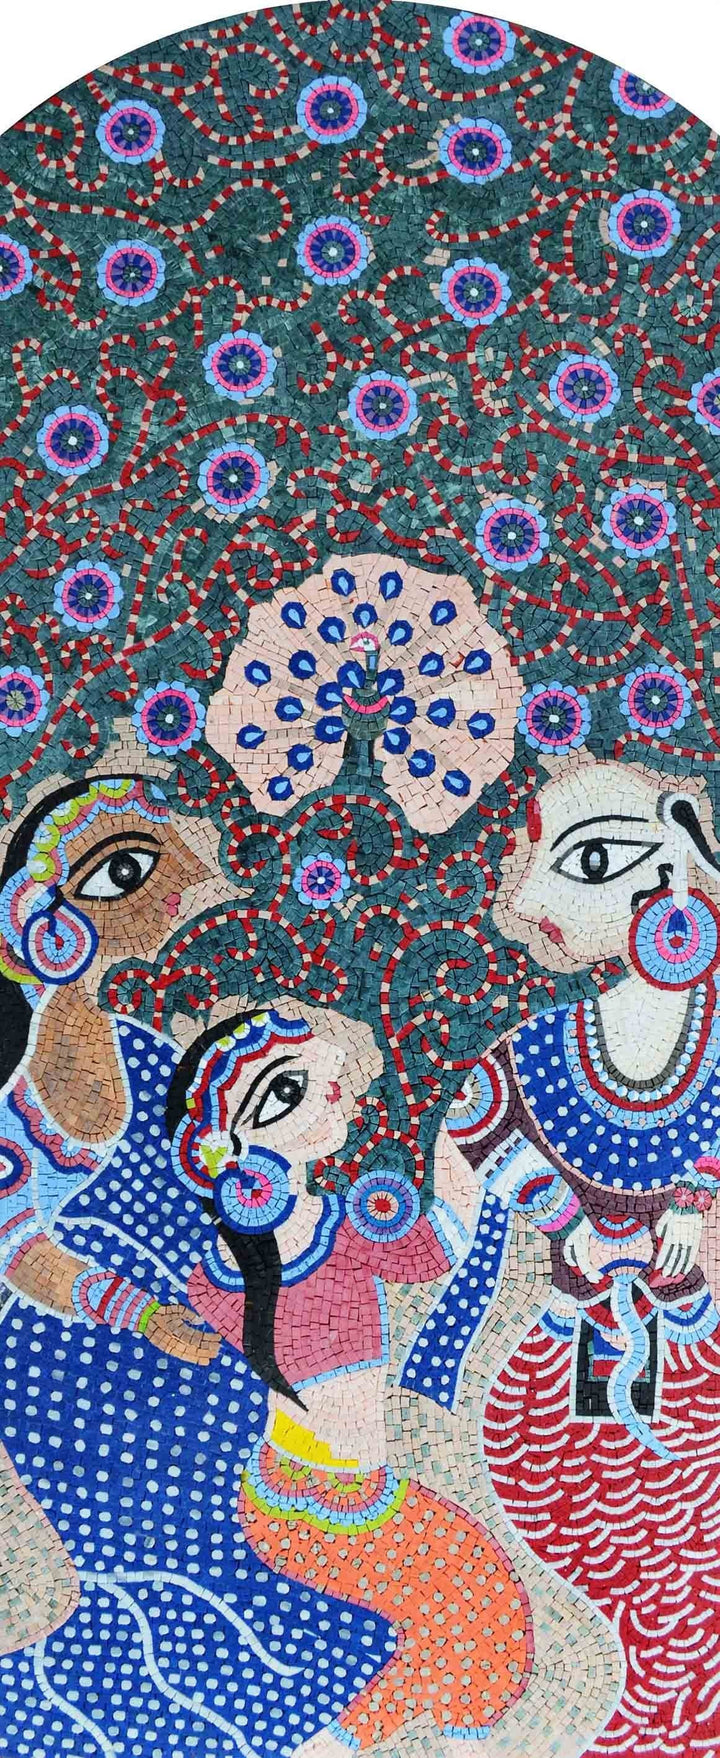 Handmade Art Reproduction Madhubani Indian Mosaic Marble